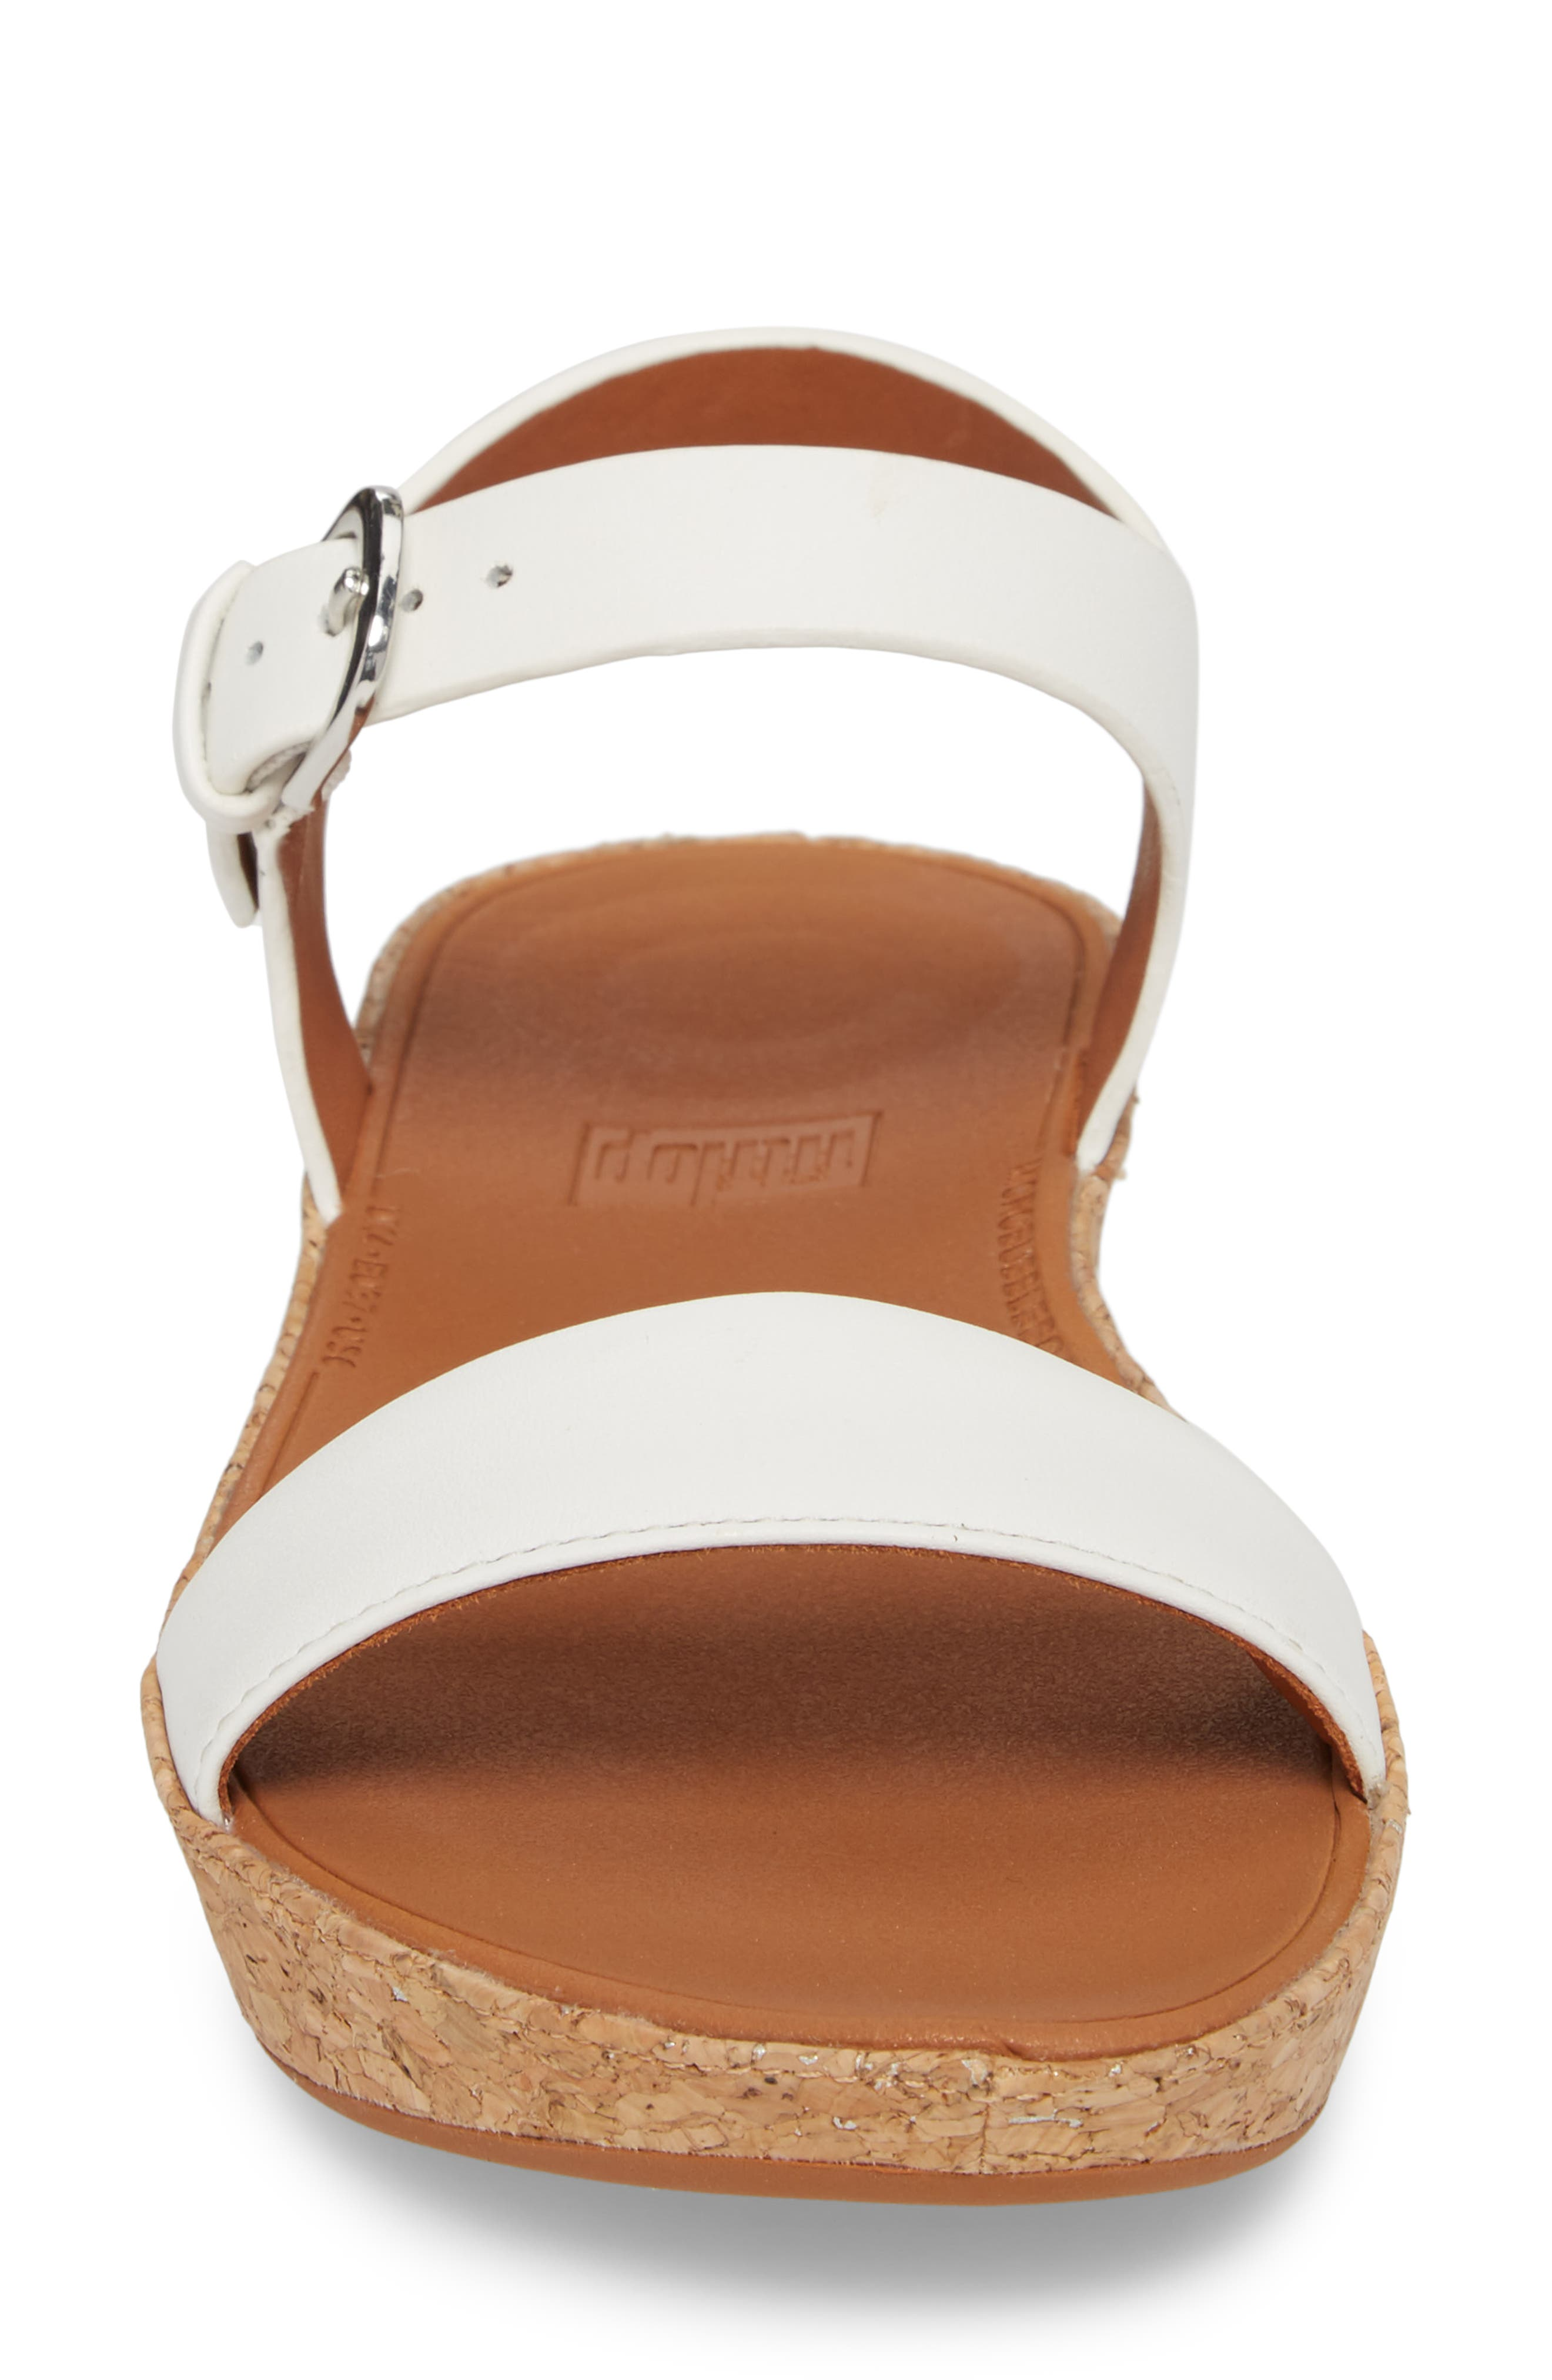 Bon II Platform Sandal,                             Alternate thumbnail 4, color,                             Urban White Leather